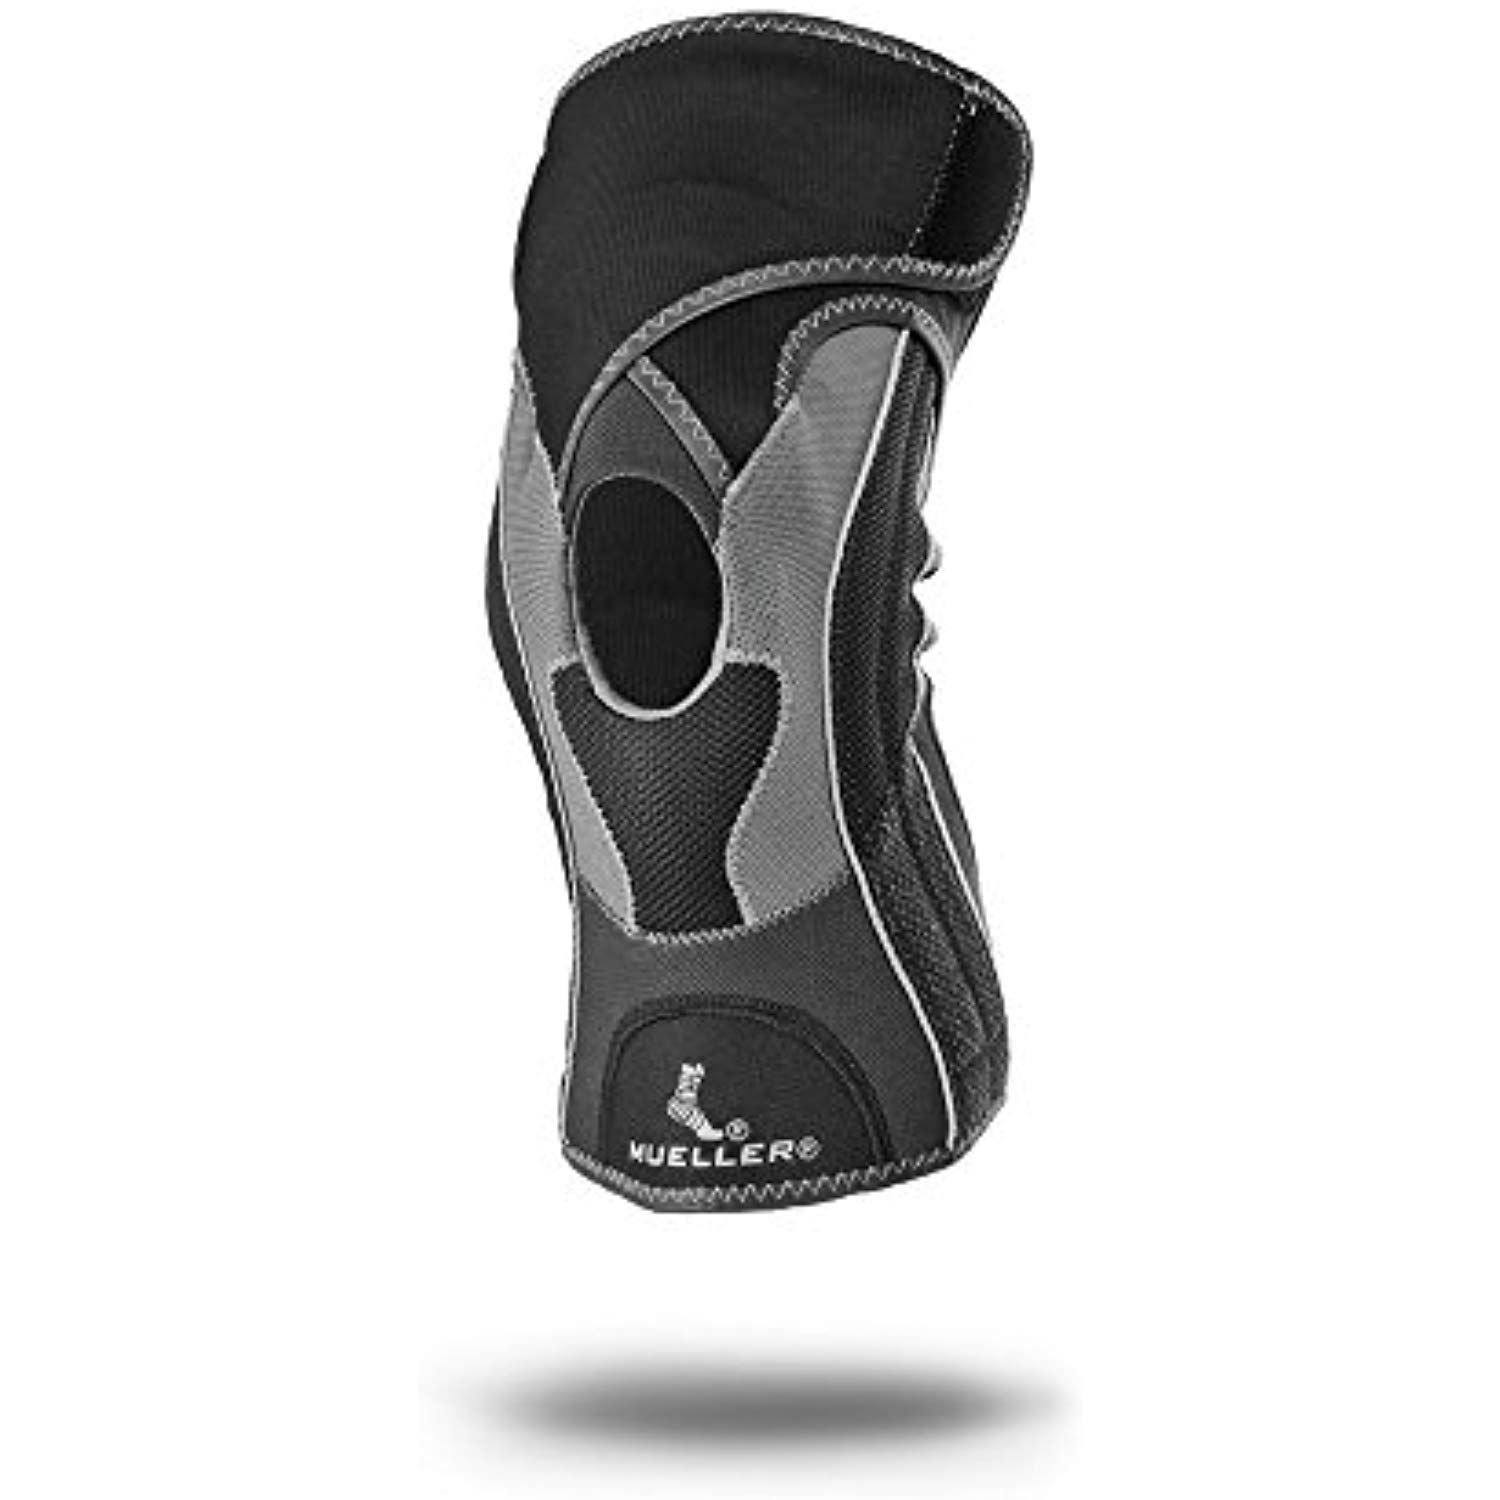 Mueller Hg80 Premium Knee Brace >>> Check out this great